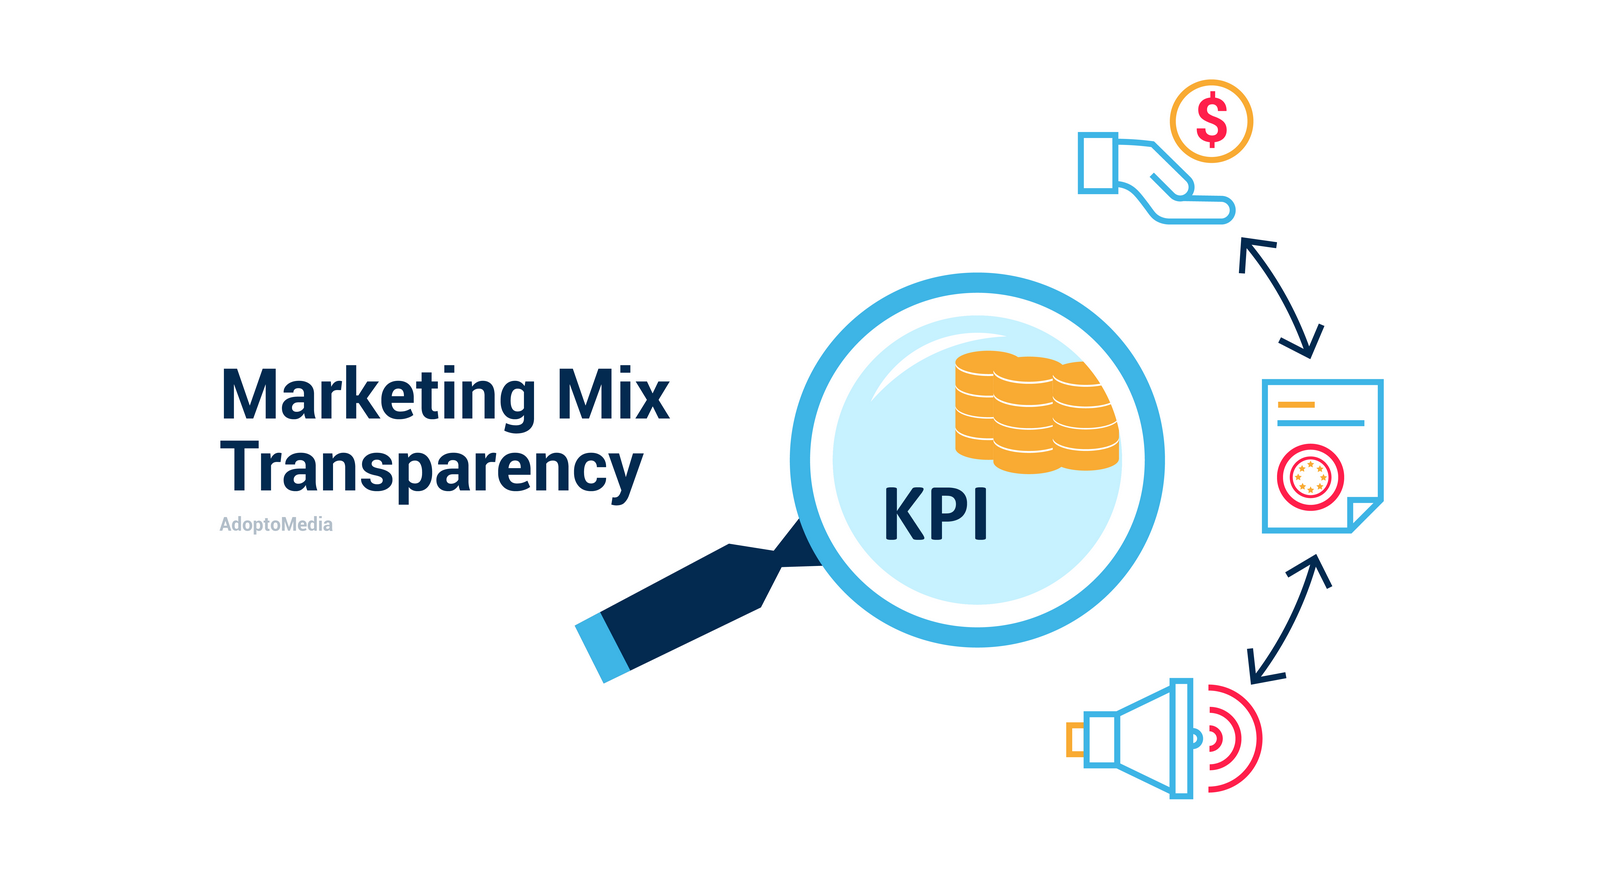 Marketing Mix Transparency, marketing, transparency, KPI, media, AdoptoMedia